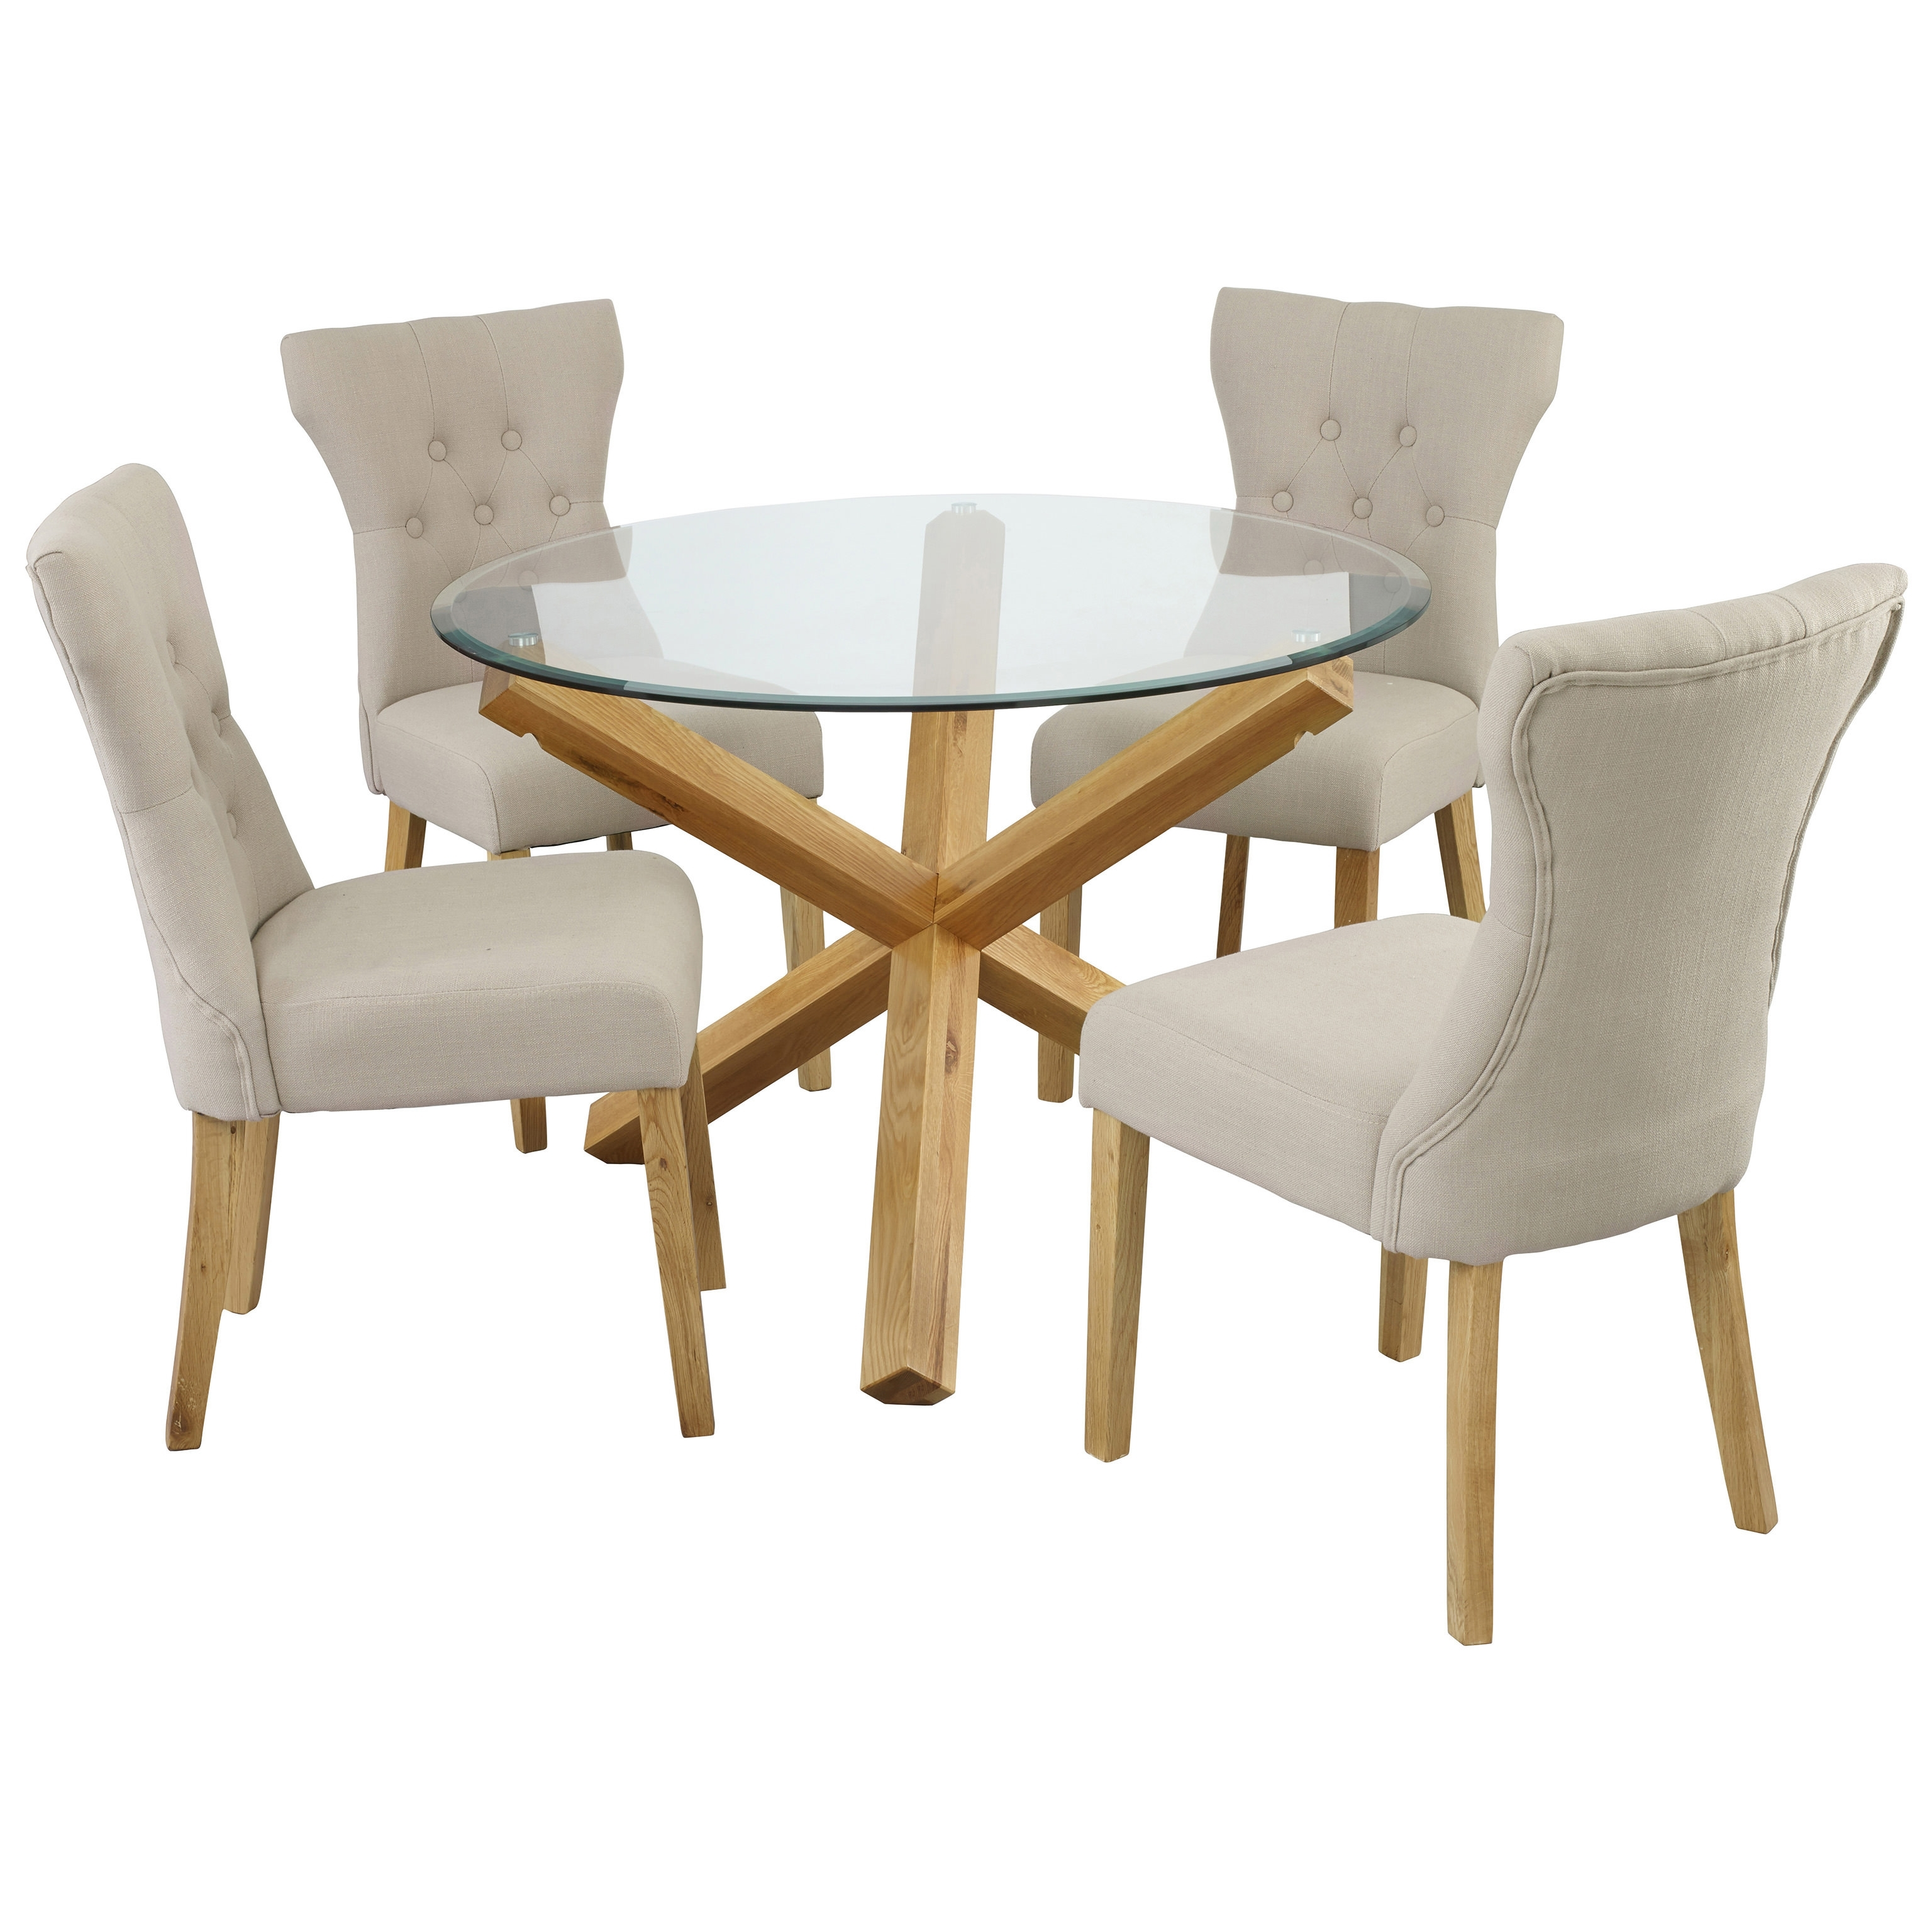 Oak & Glass Round Dining Table And Chair Set With 4 Fabric Seats Regarding Recent Cheap Oak Dining Tables (View 16 of 25)